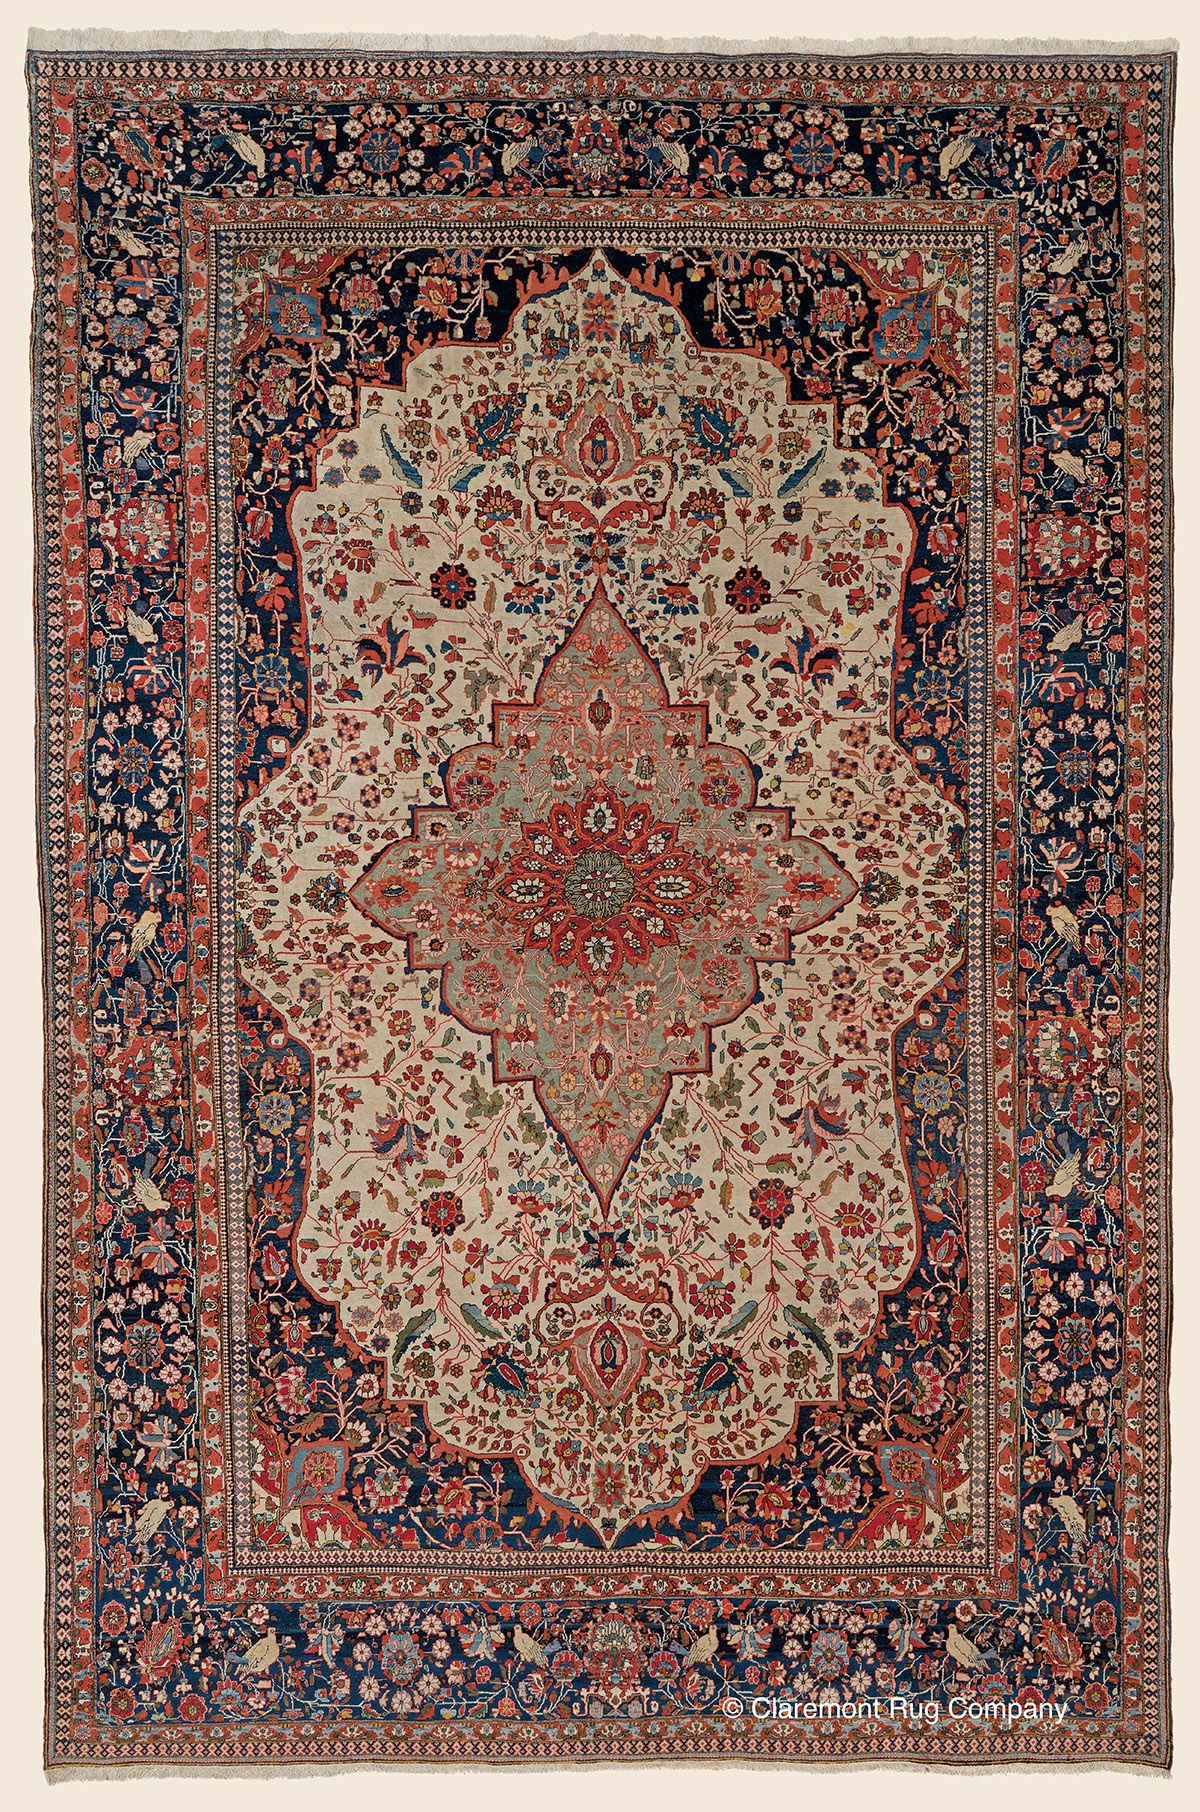 Mohtasham Kashan Central Persian Antique 7 10 X 12 1 Late 19th Century Rug Claremont Rug Company Click To Carpet Handmade Antique Persian Carpet Rugs